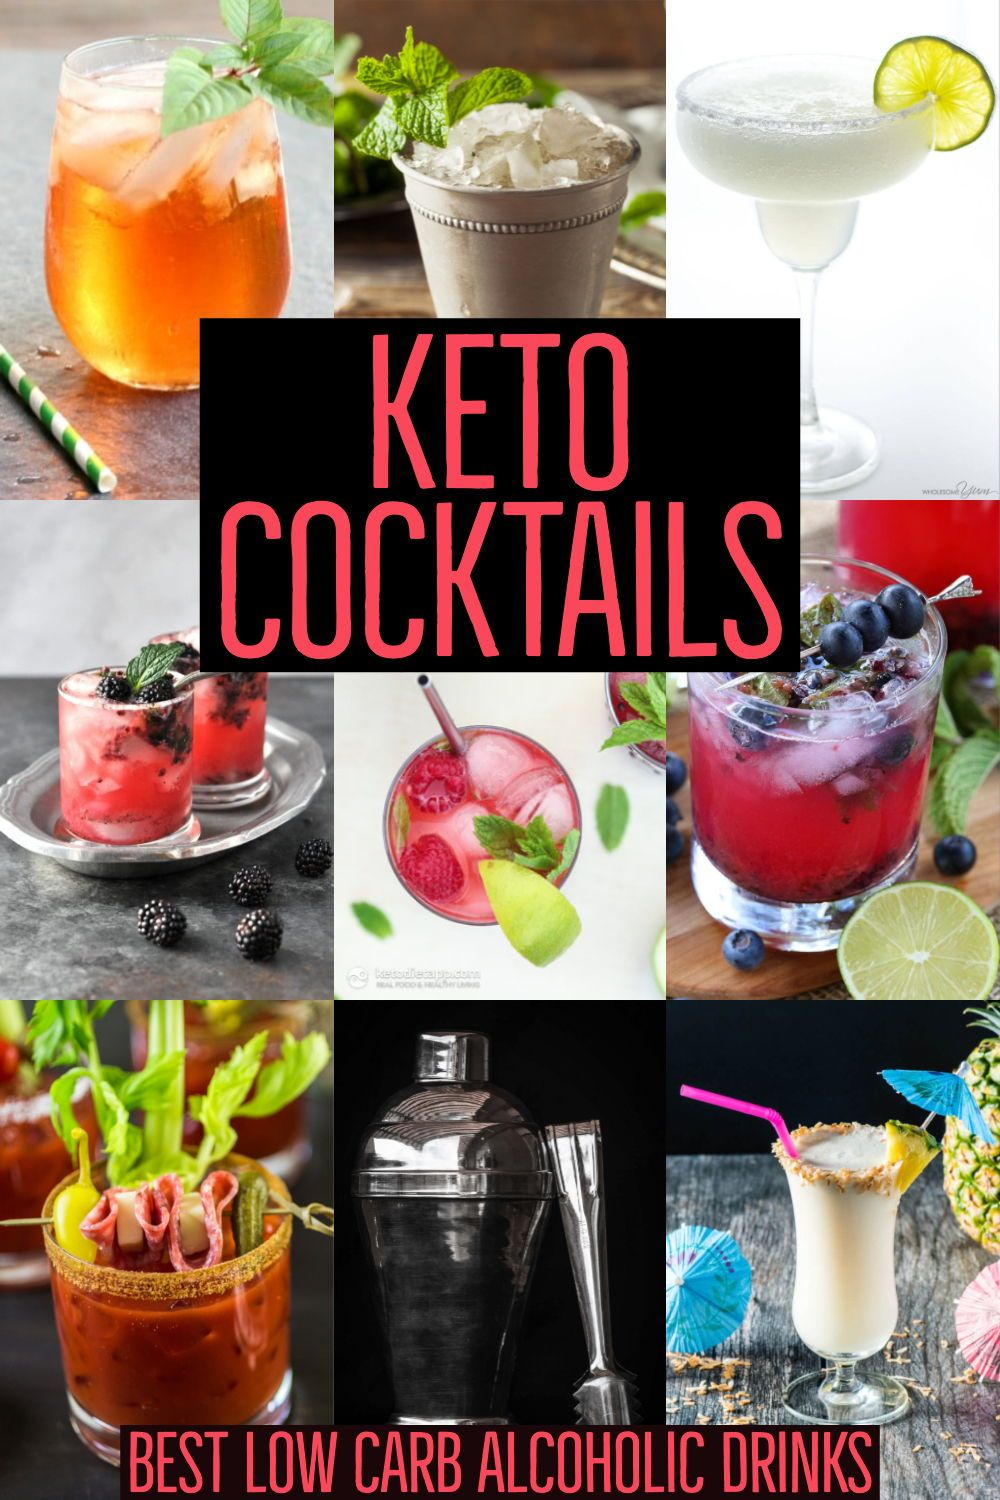 Alcohol On Keto Diet Best Worst Low Carb Alcoholic Drinks Keto Cocktails Low Carb Alcoholic Drinks Keto Drink